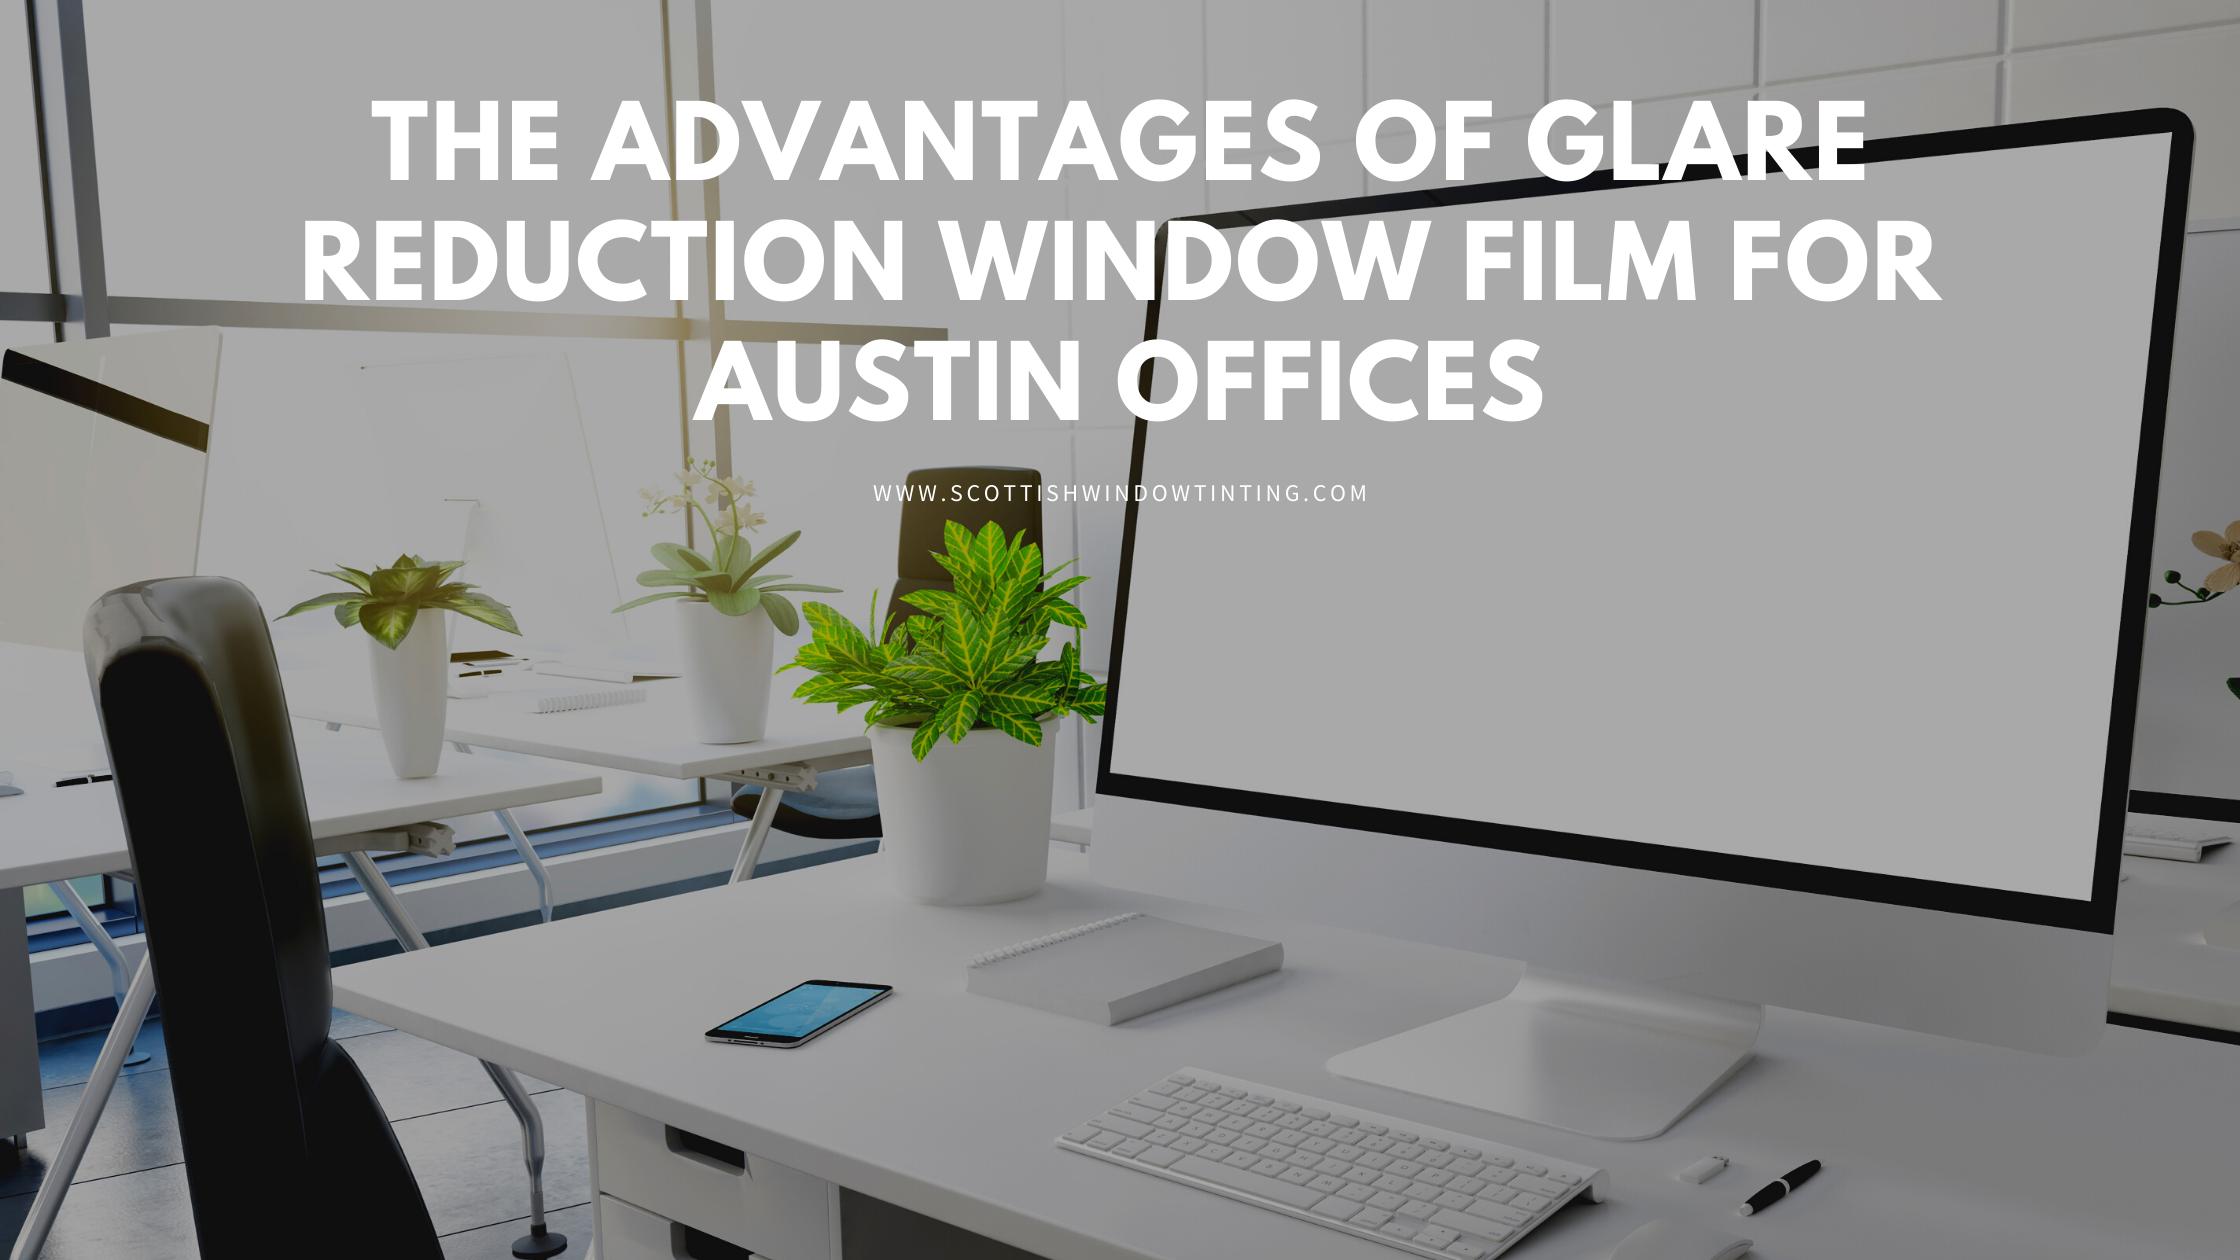 The Advantages of Glare Reduction Window Film for Austin Offices